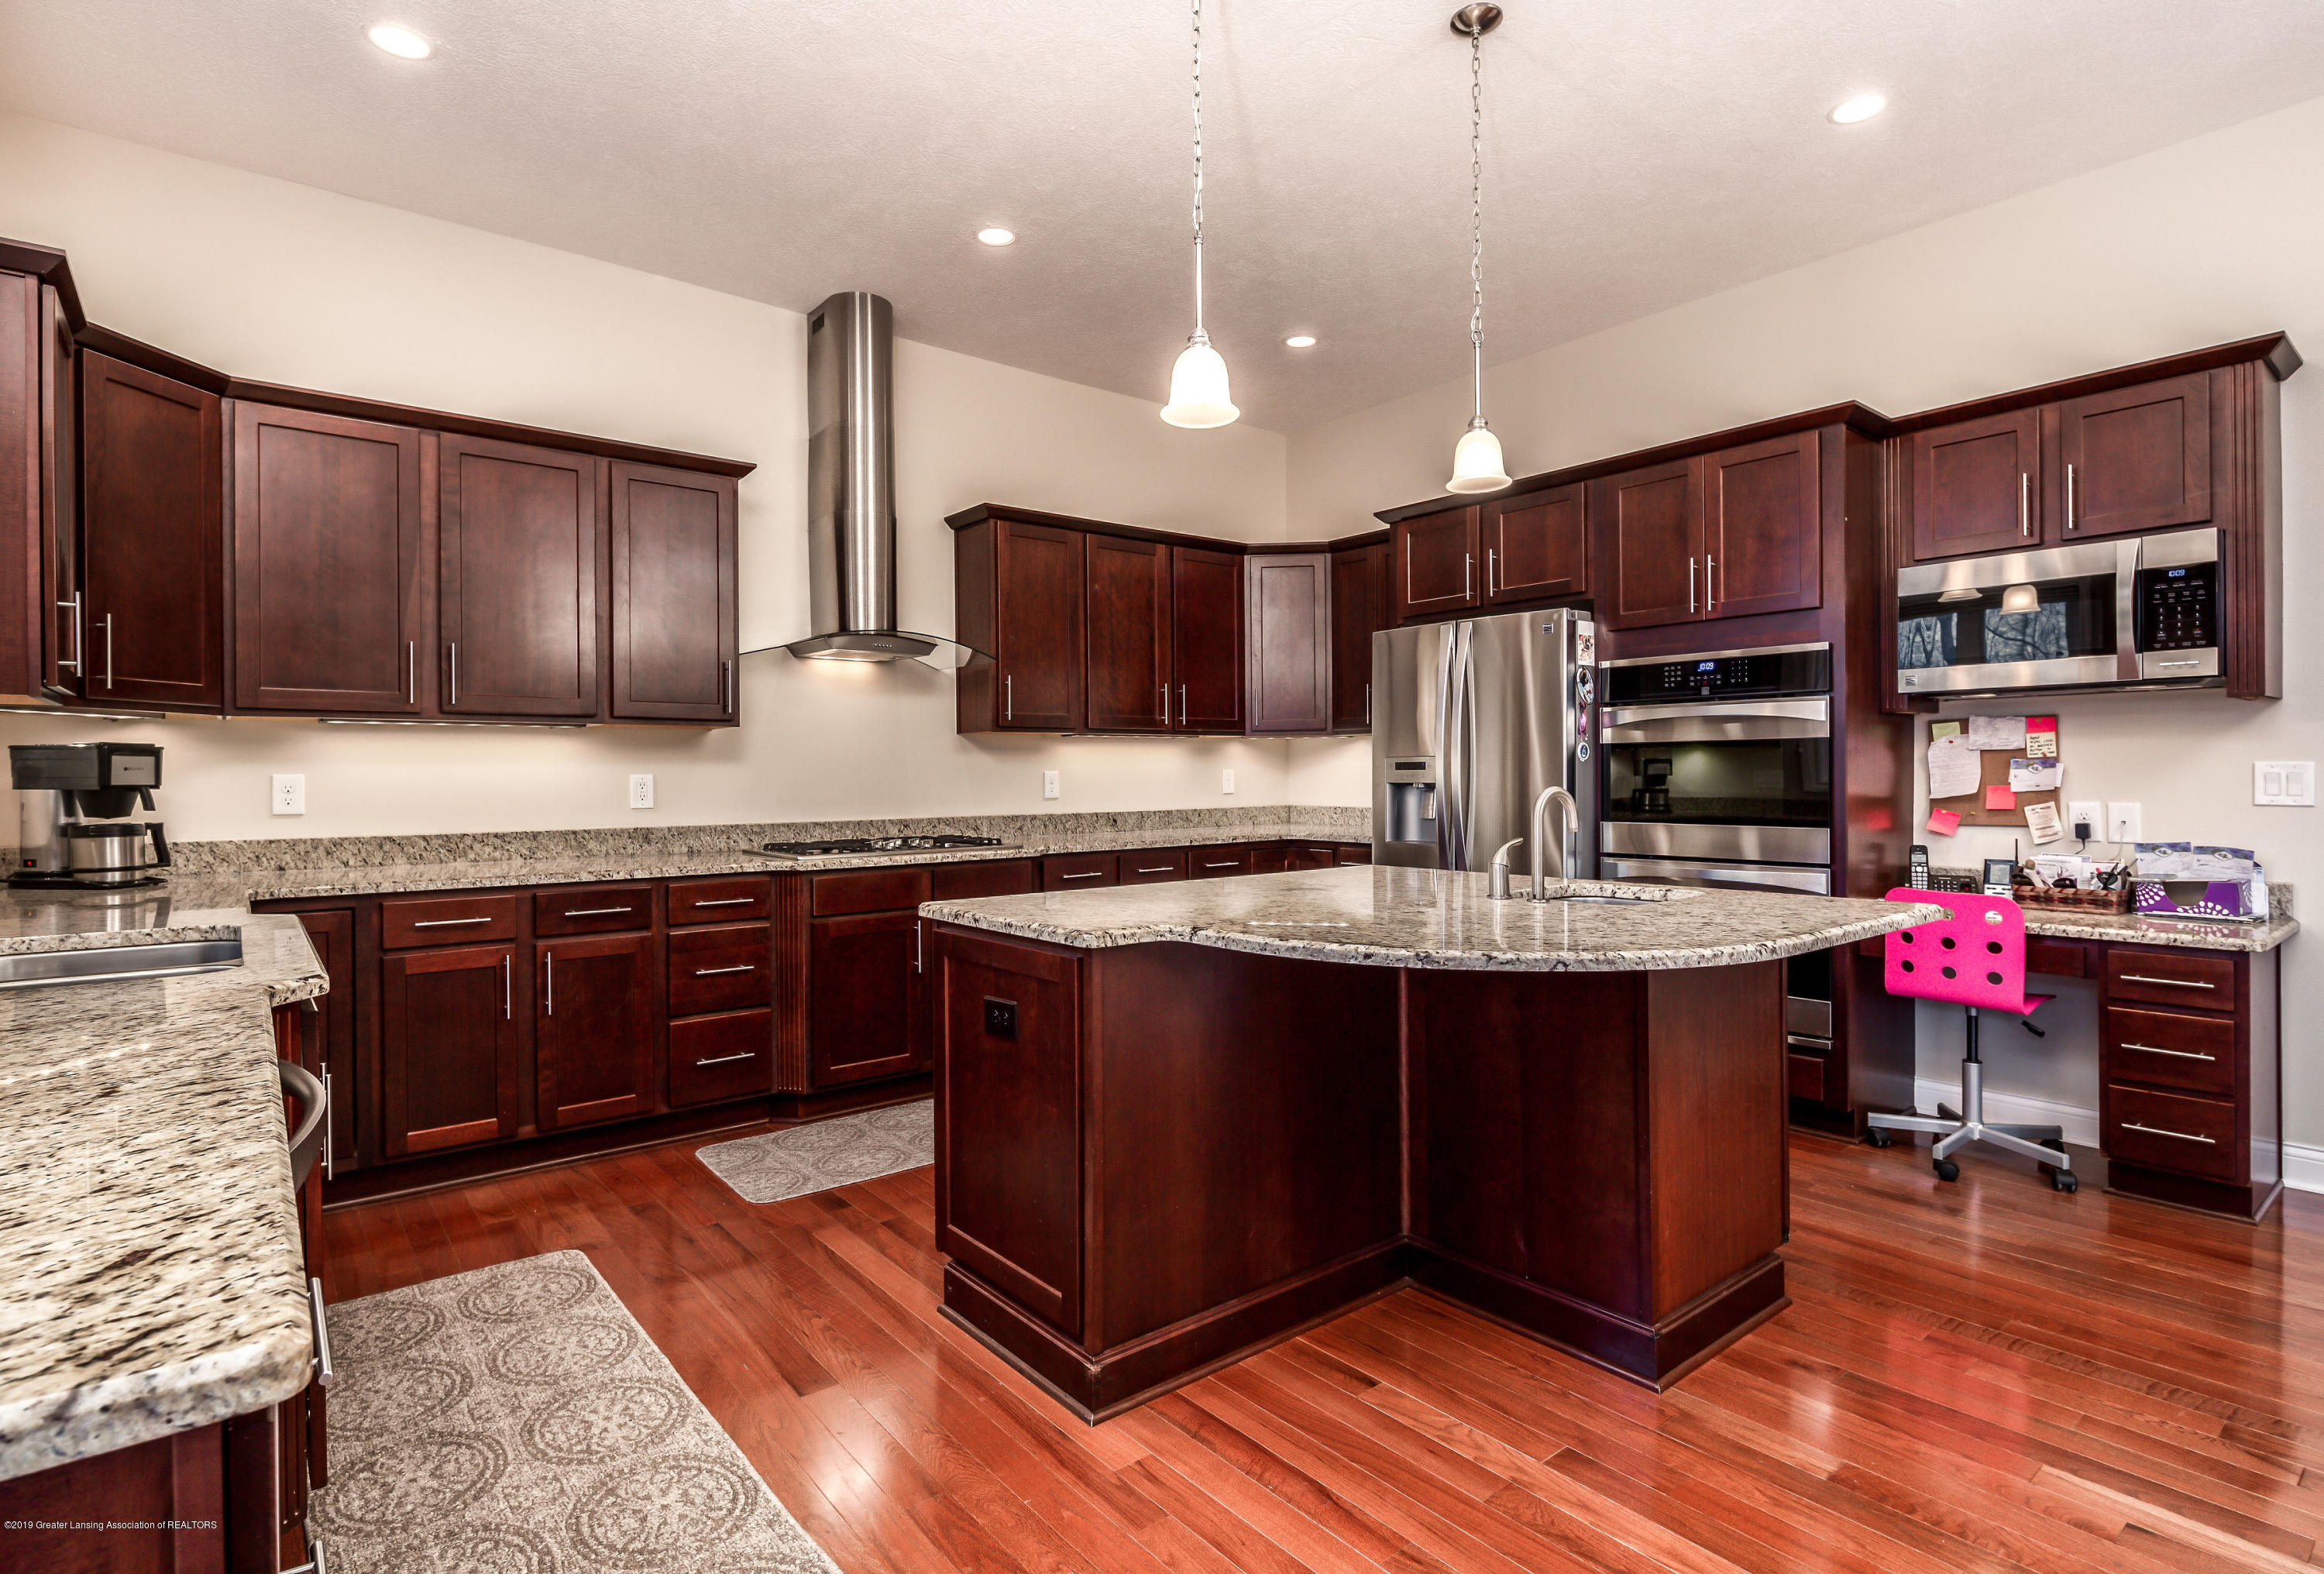 6257 Mereford Ct - 20190426-942A2822-Edit - 12